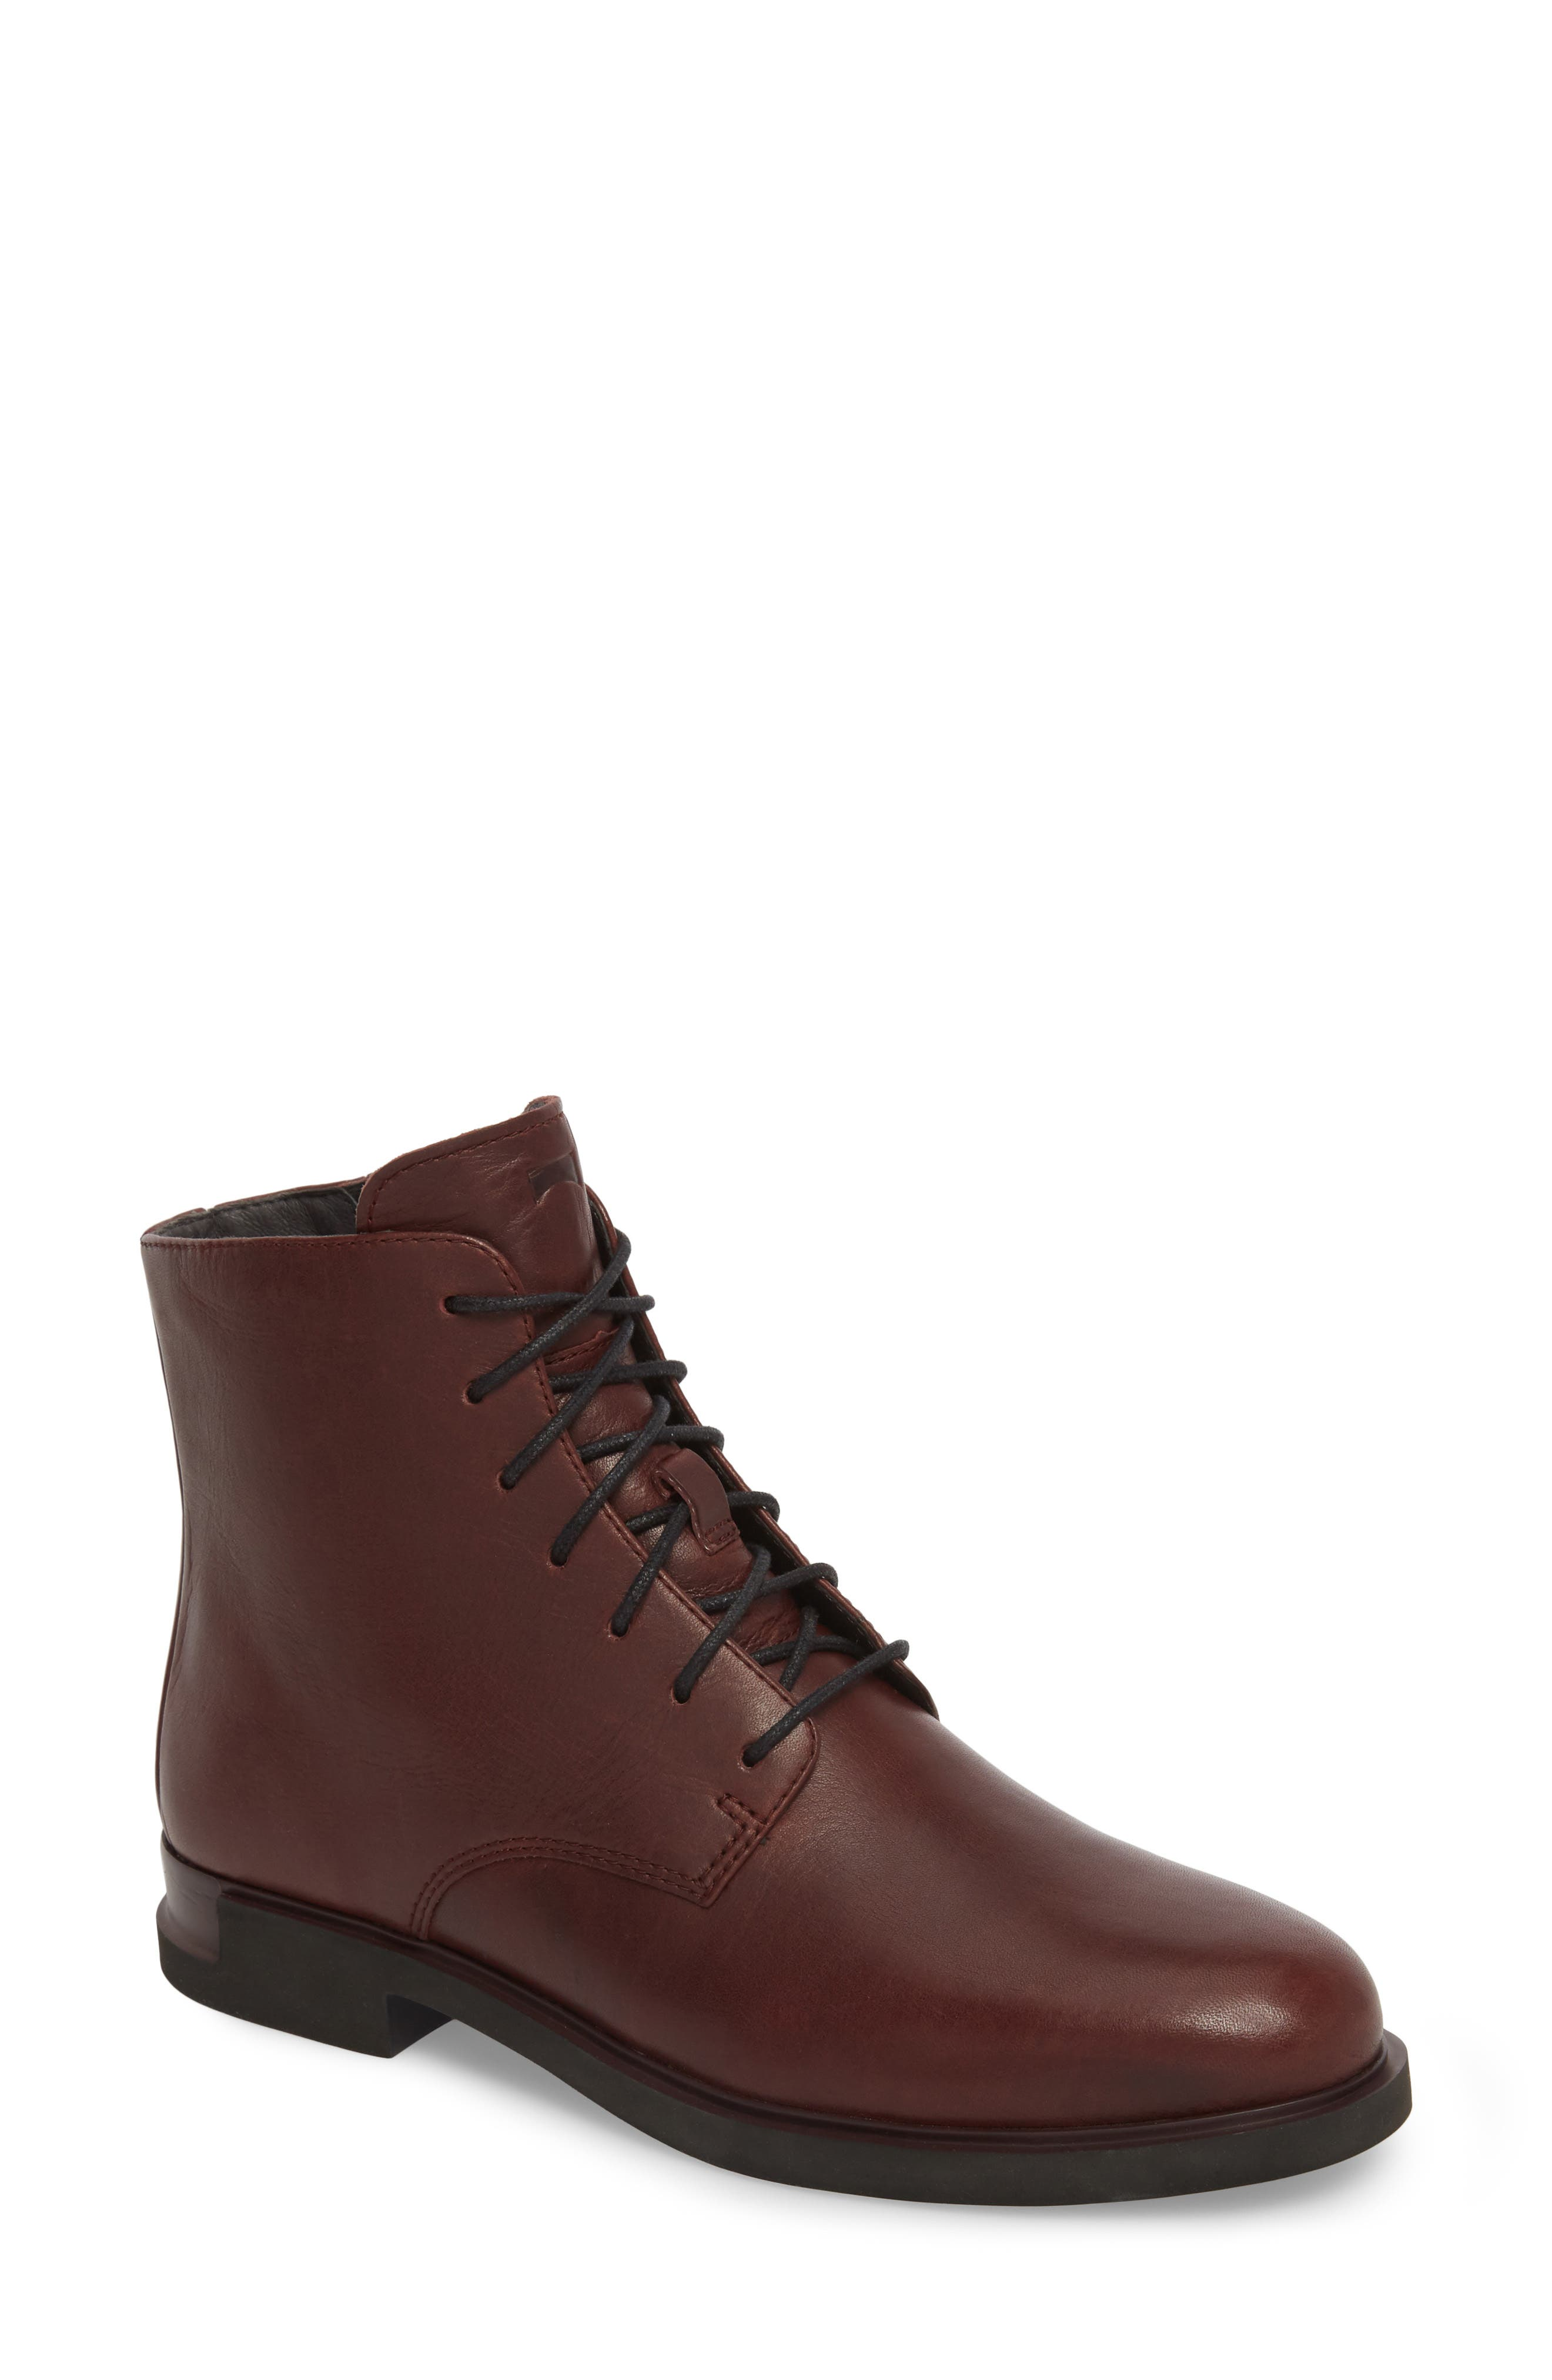 Helix Lace-Up Bootie,                             Main thumbnail 1, color,                             Burgundy Leather